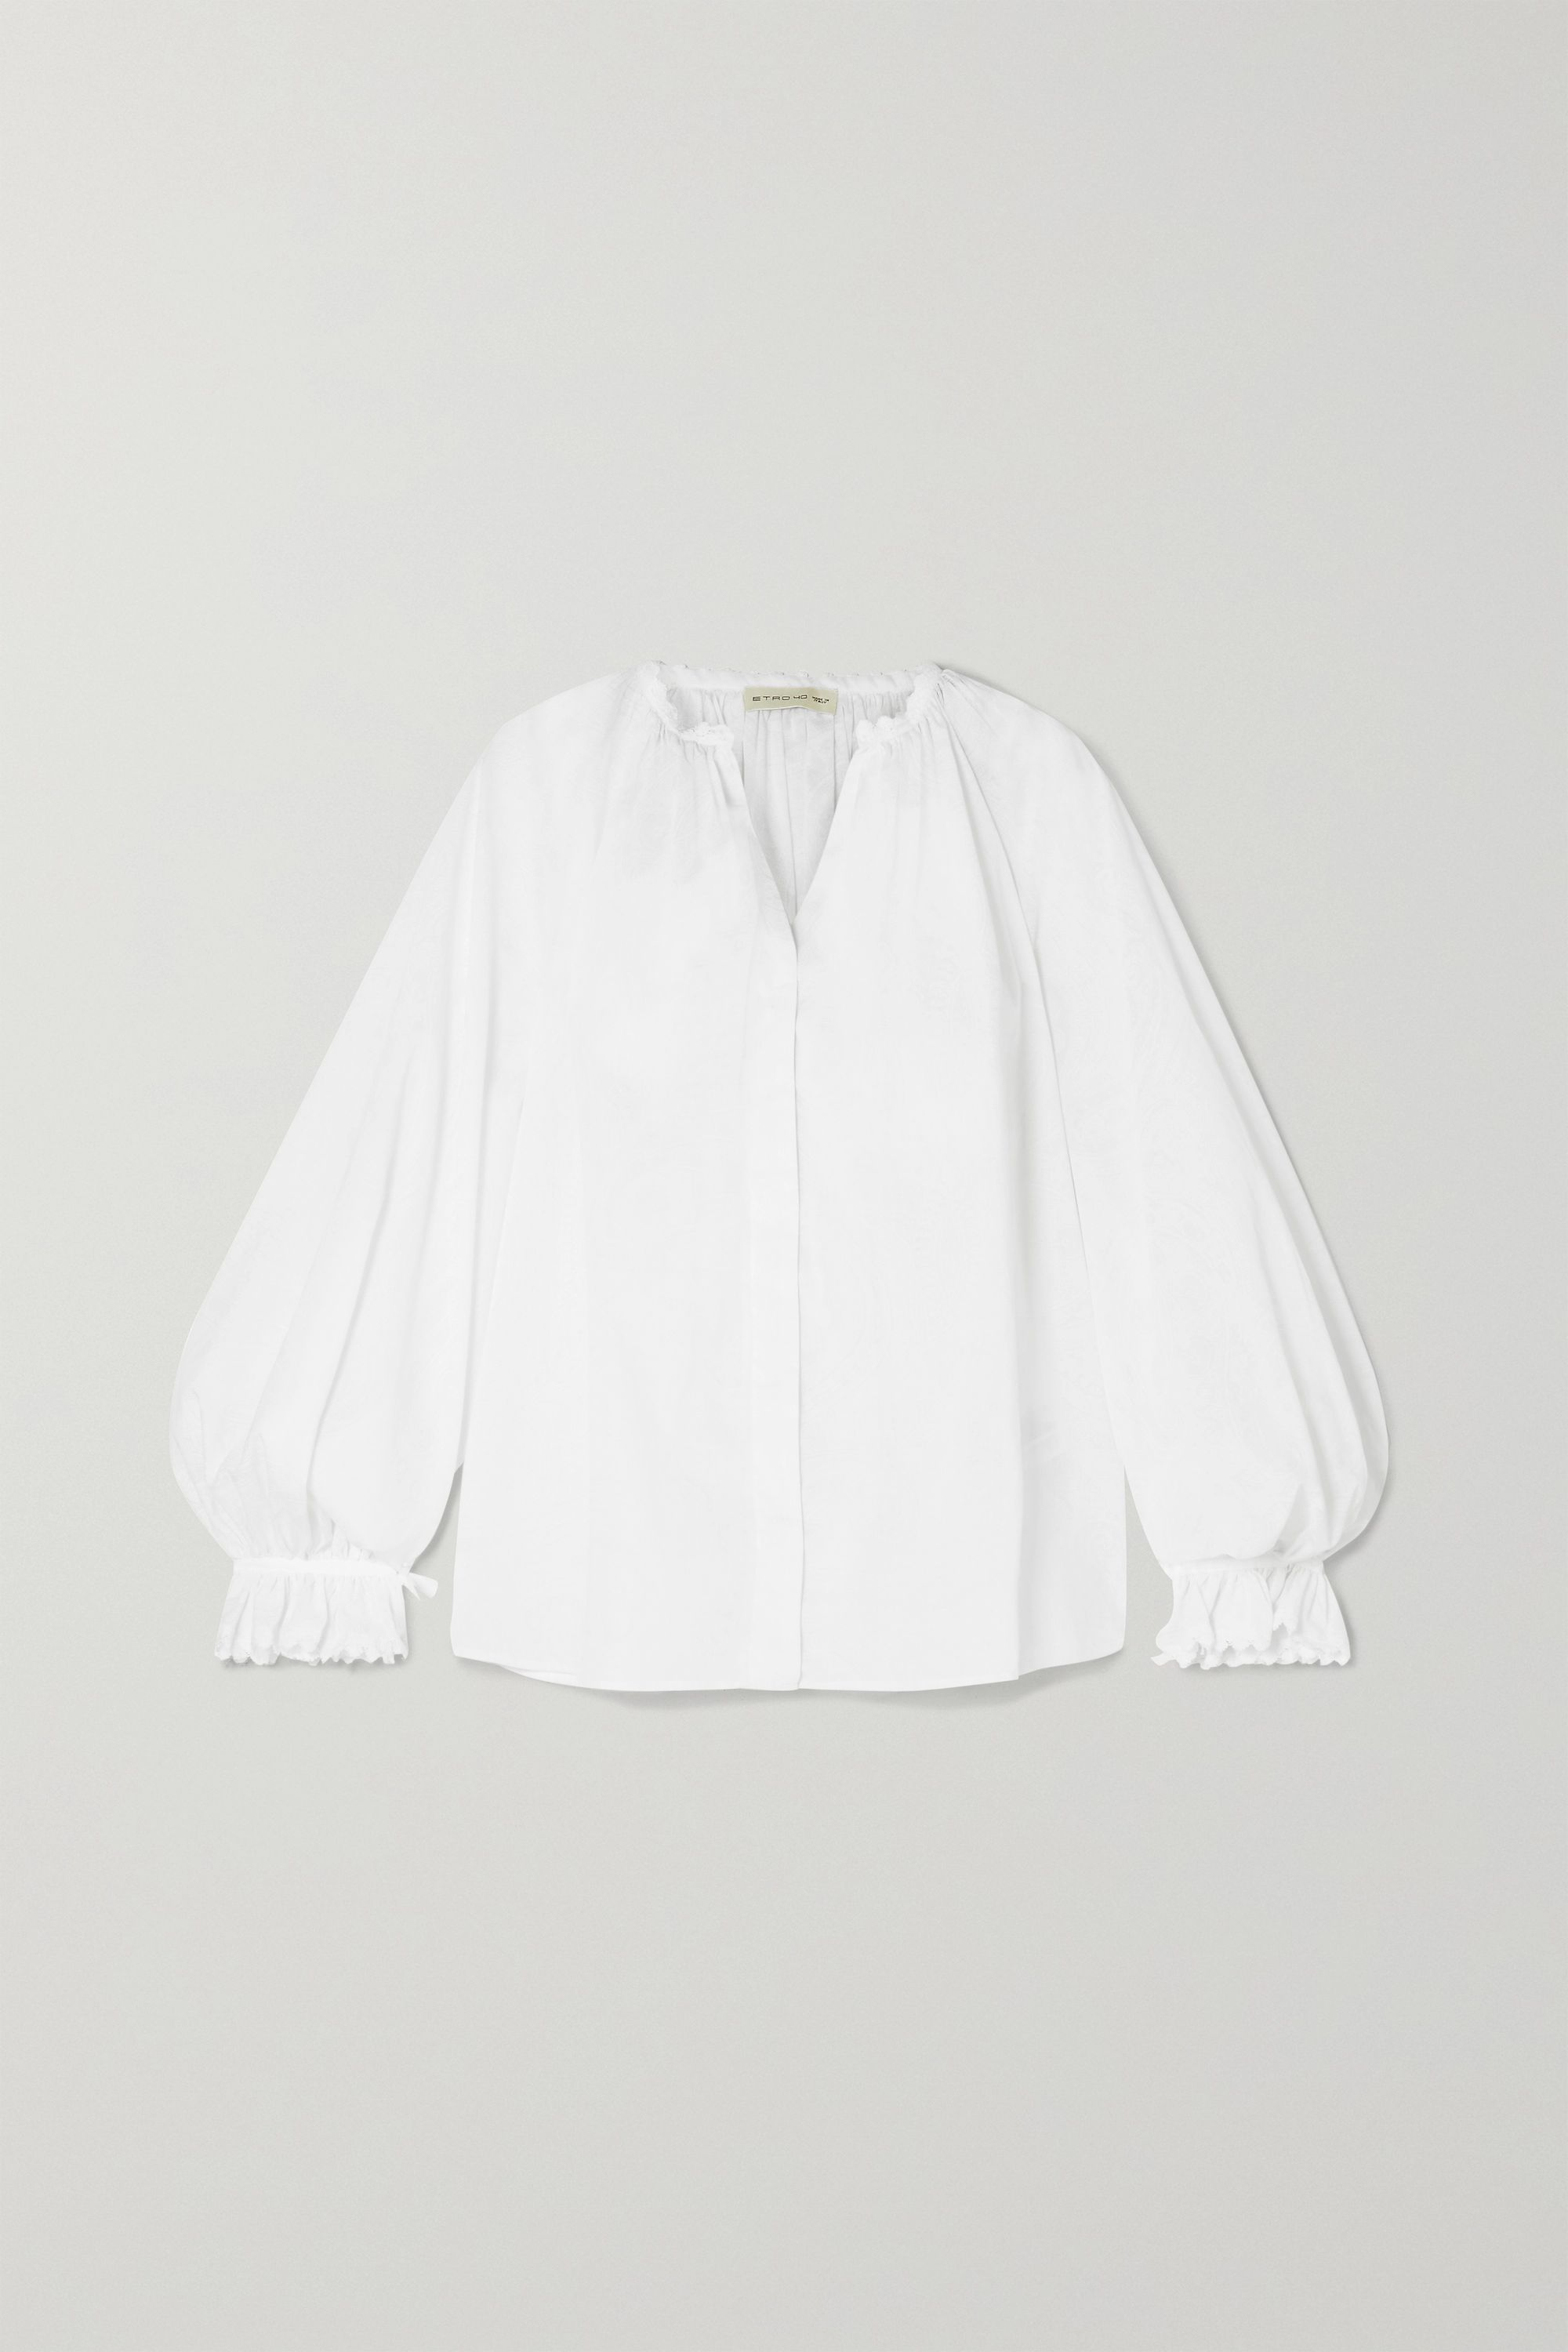 Etro Lace-trimmed printed cotton blouse